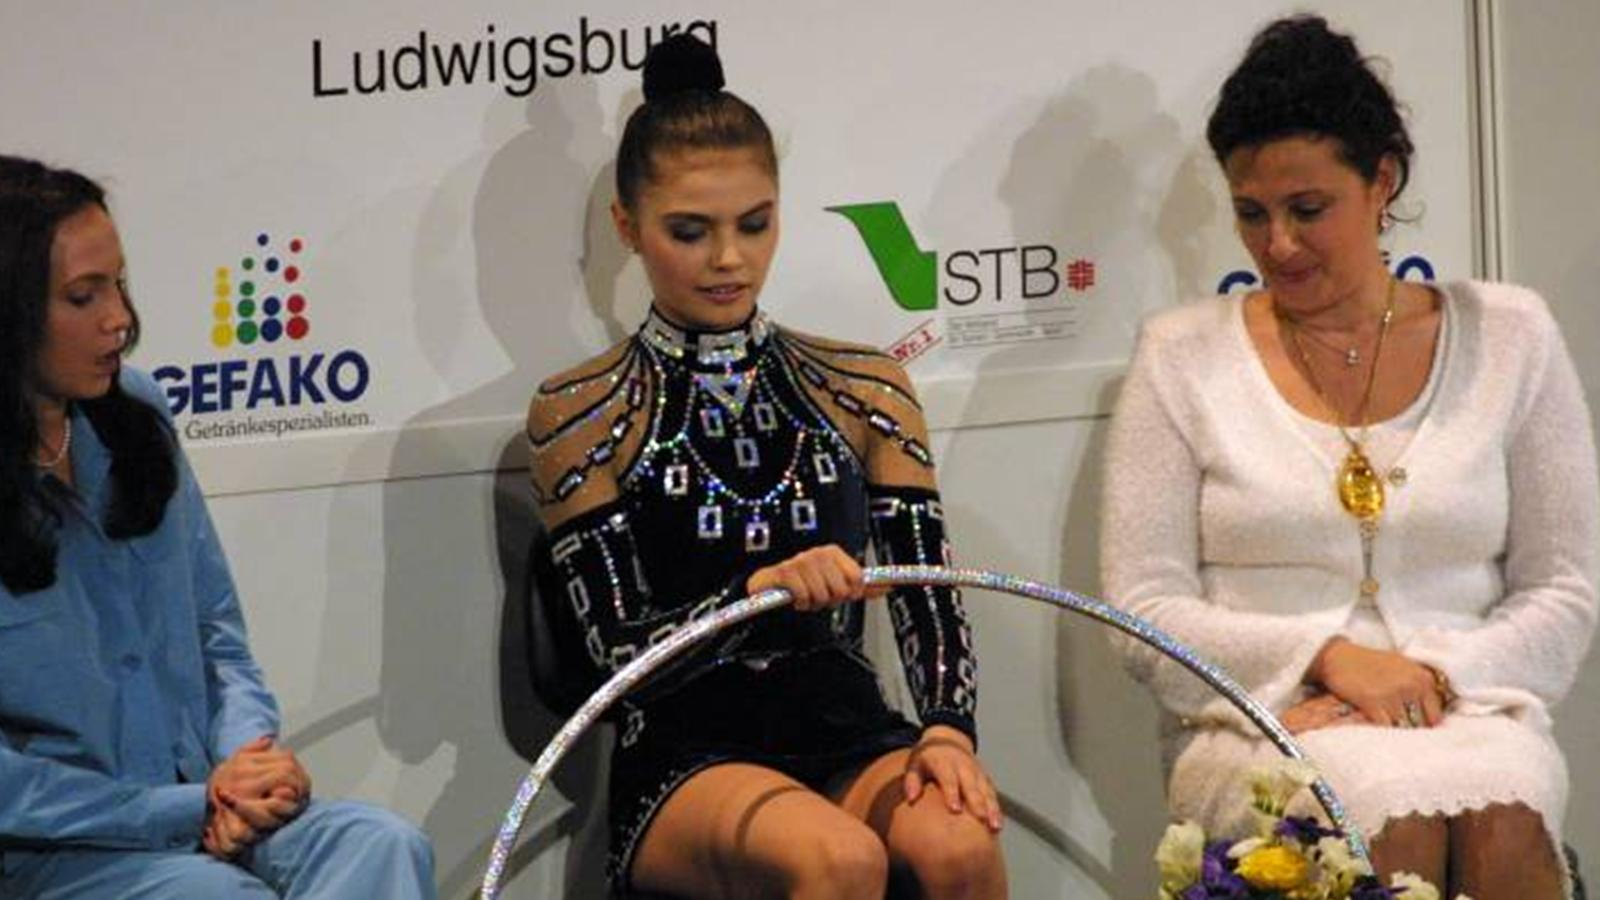 an introduction to the history and the origins of the sport rhythmic gymnastics In rhythmic gymnastics, the athletes use equipment such as hoops, balls, ropes,   an introduction to sports  history of rhythmic gymnastics  most notably  japan, males are beginning to participate in rhythmic gymnastics.